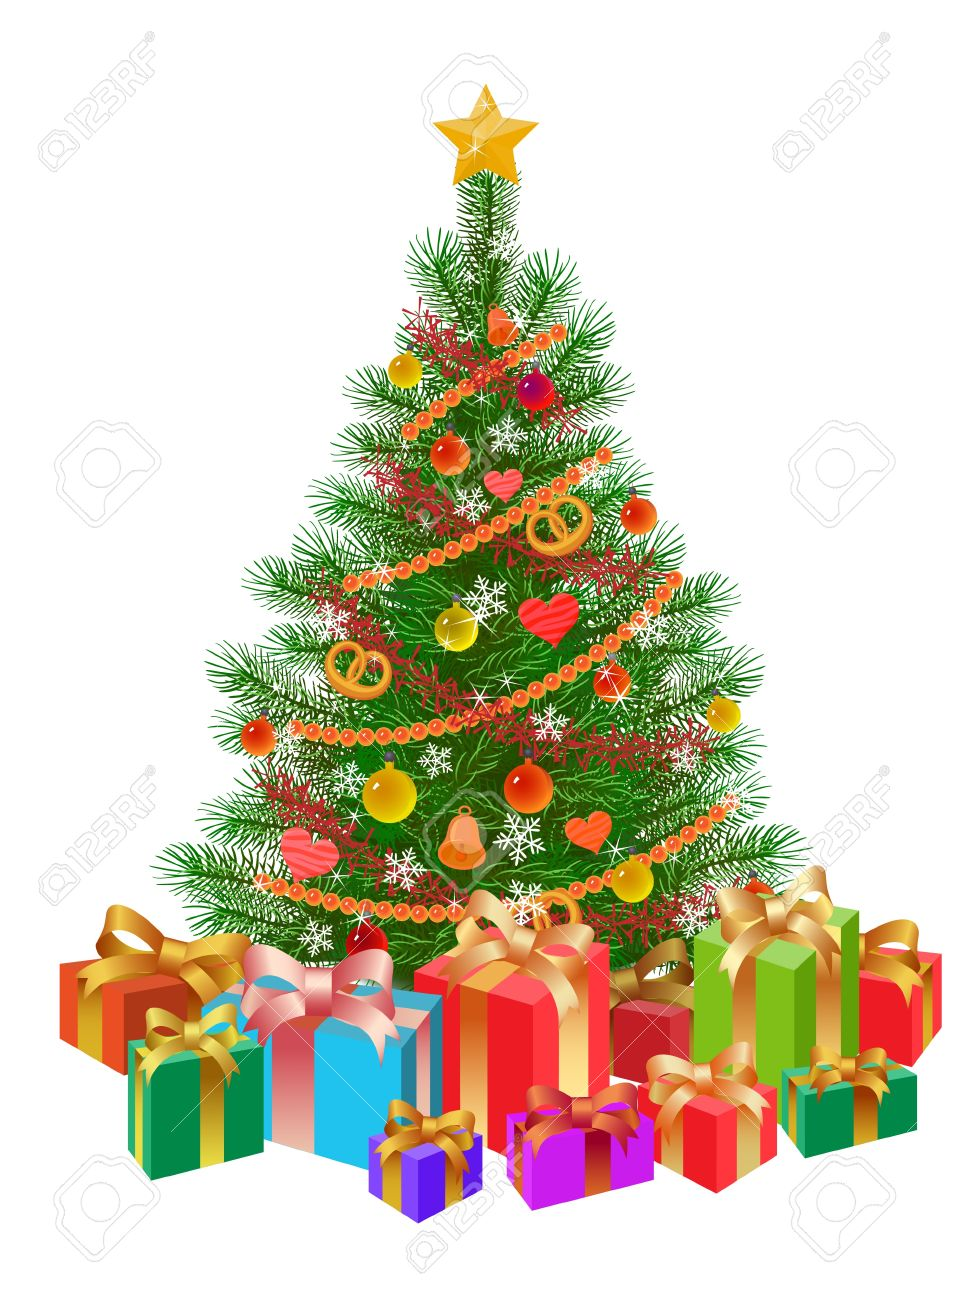 Real christmas trees with presents - Decorated Christmas Tree Presents Isolated On White Stock Vector 10904791